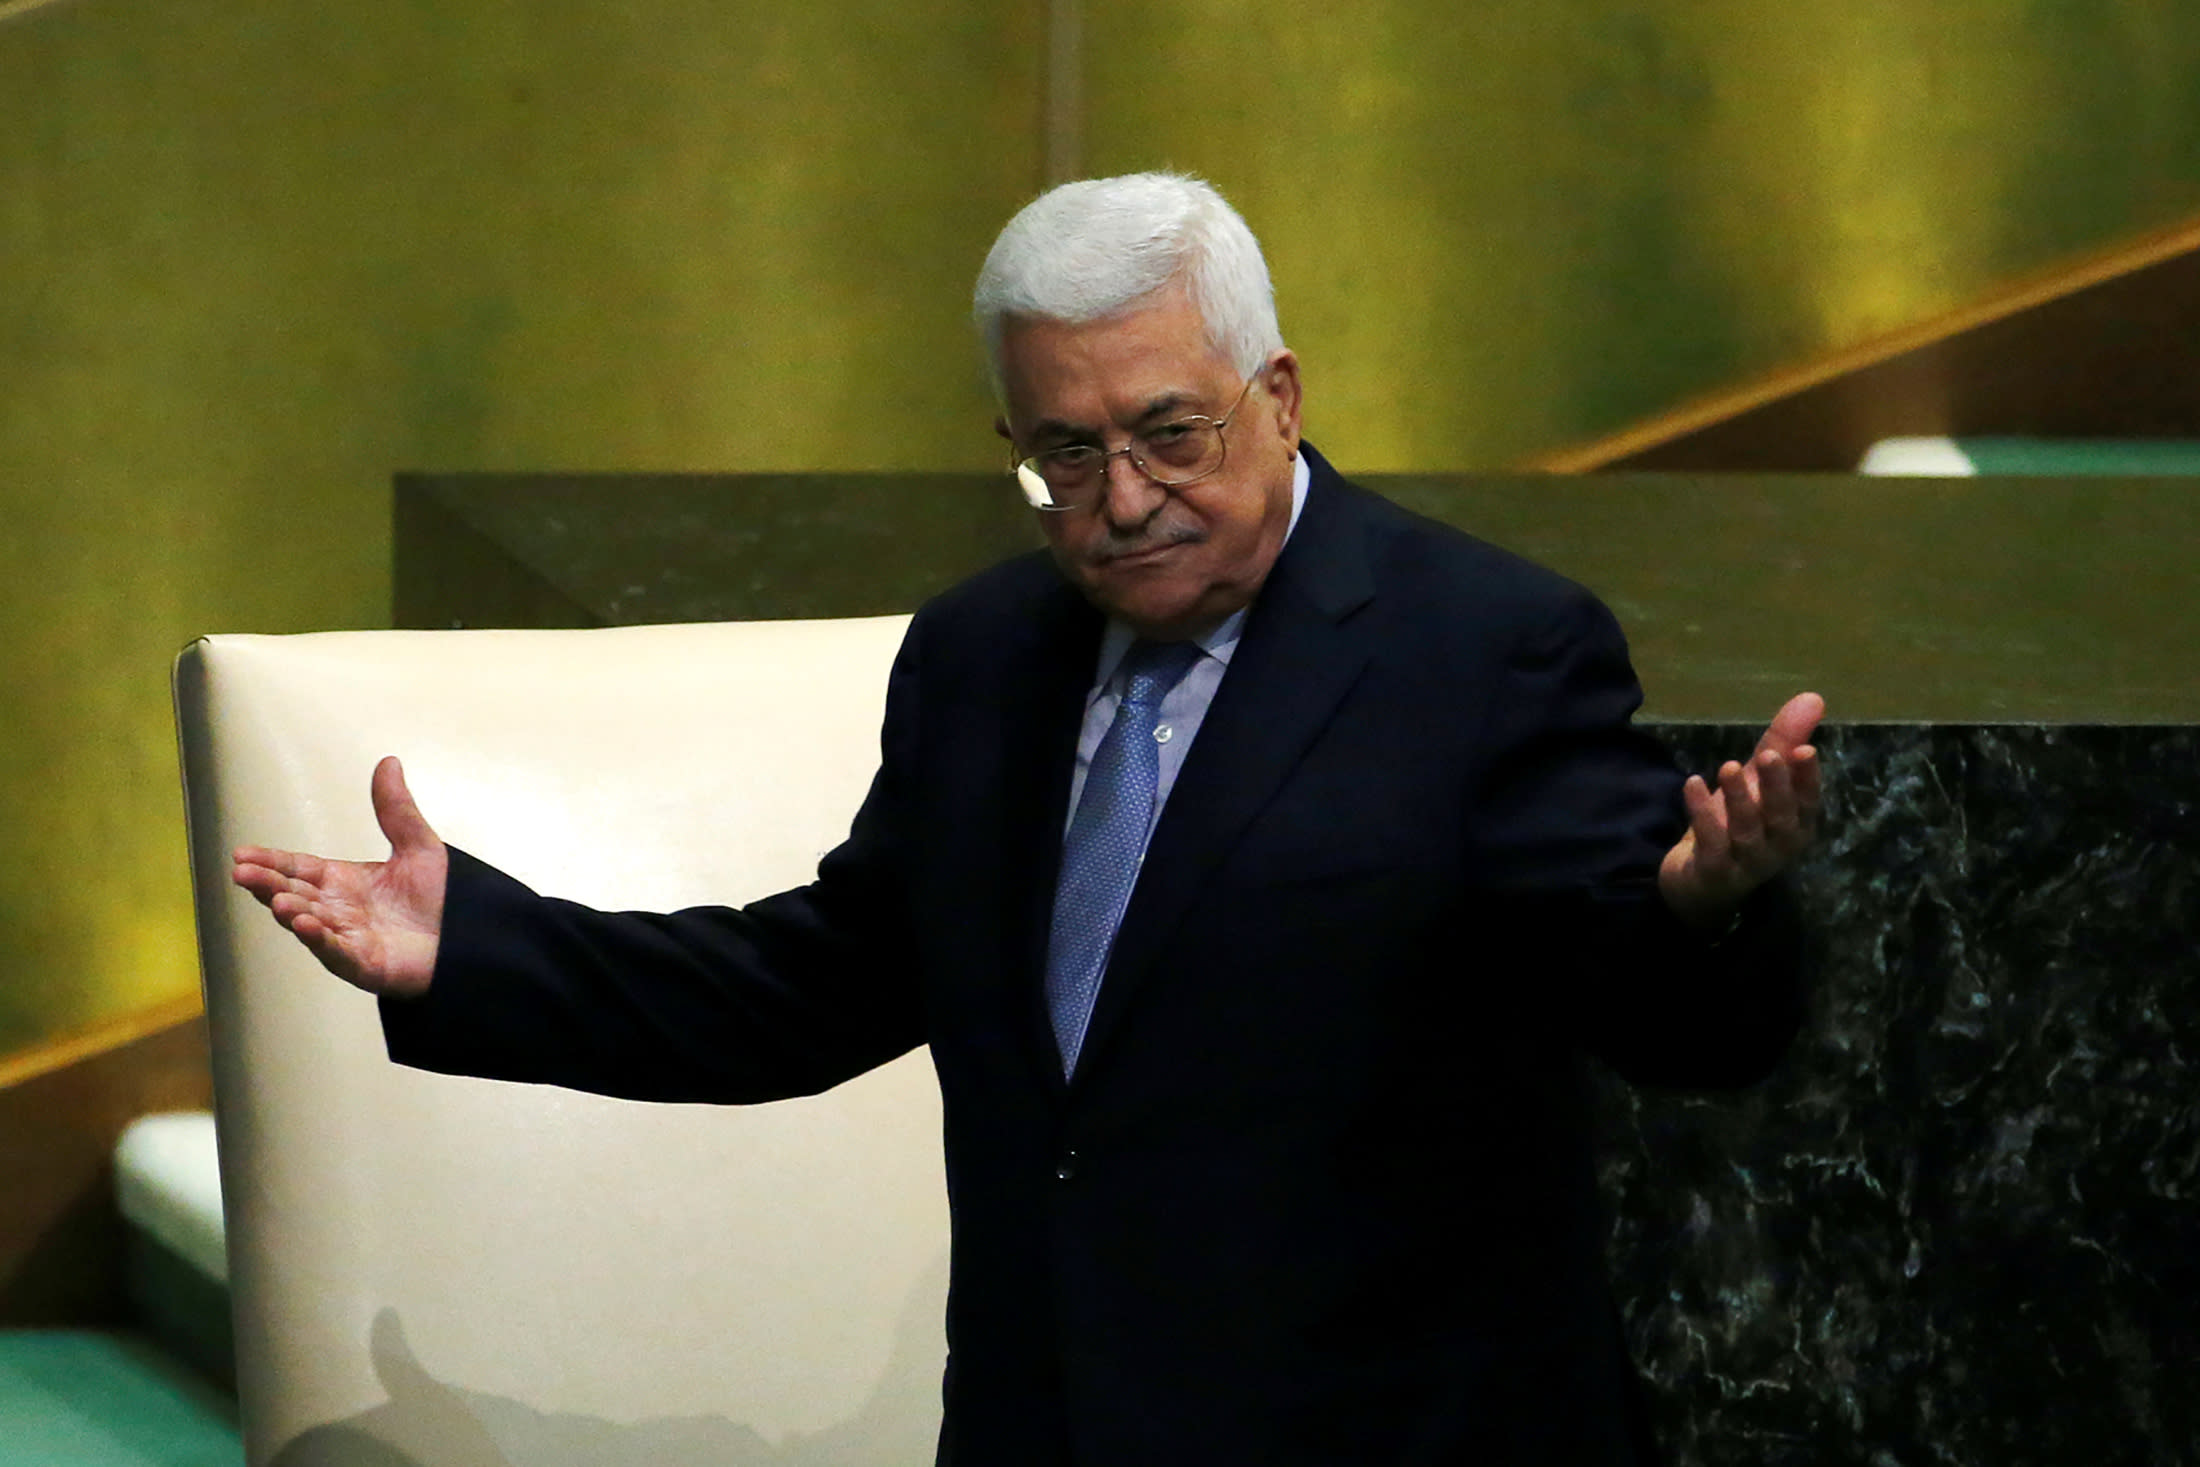 Palestinian President Mahmoud Abbas greets delegates after addressing the 72nd United Nations General Assembly at U.N. headquarters in New York, US, September 20, 2017. (Reuters)